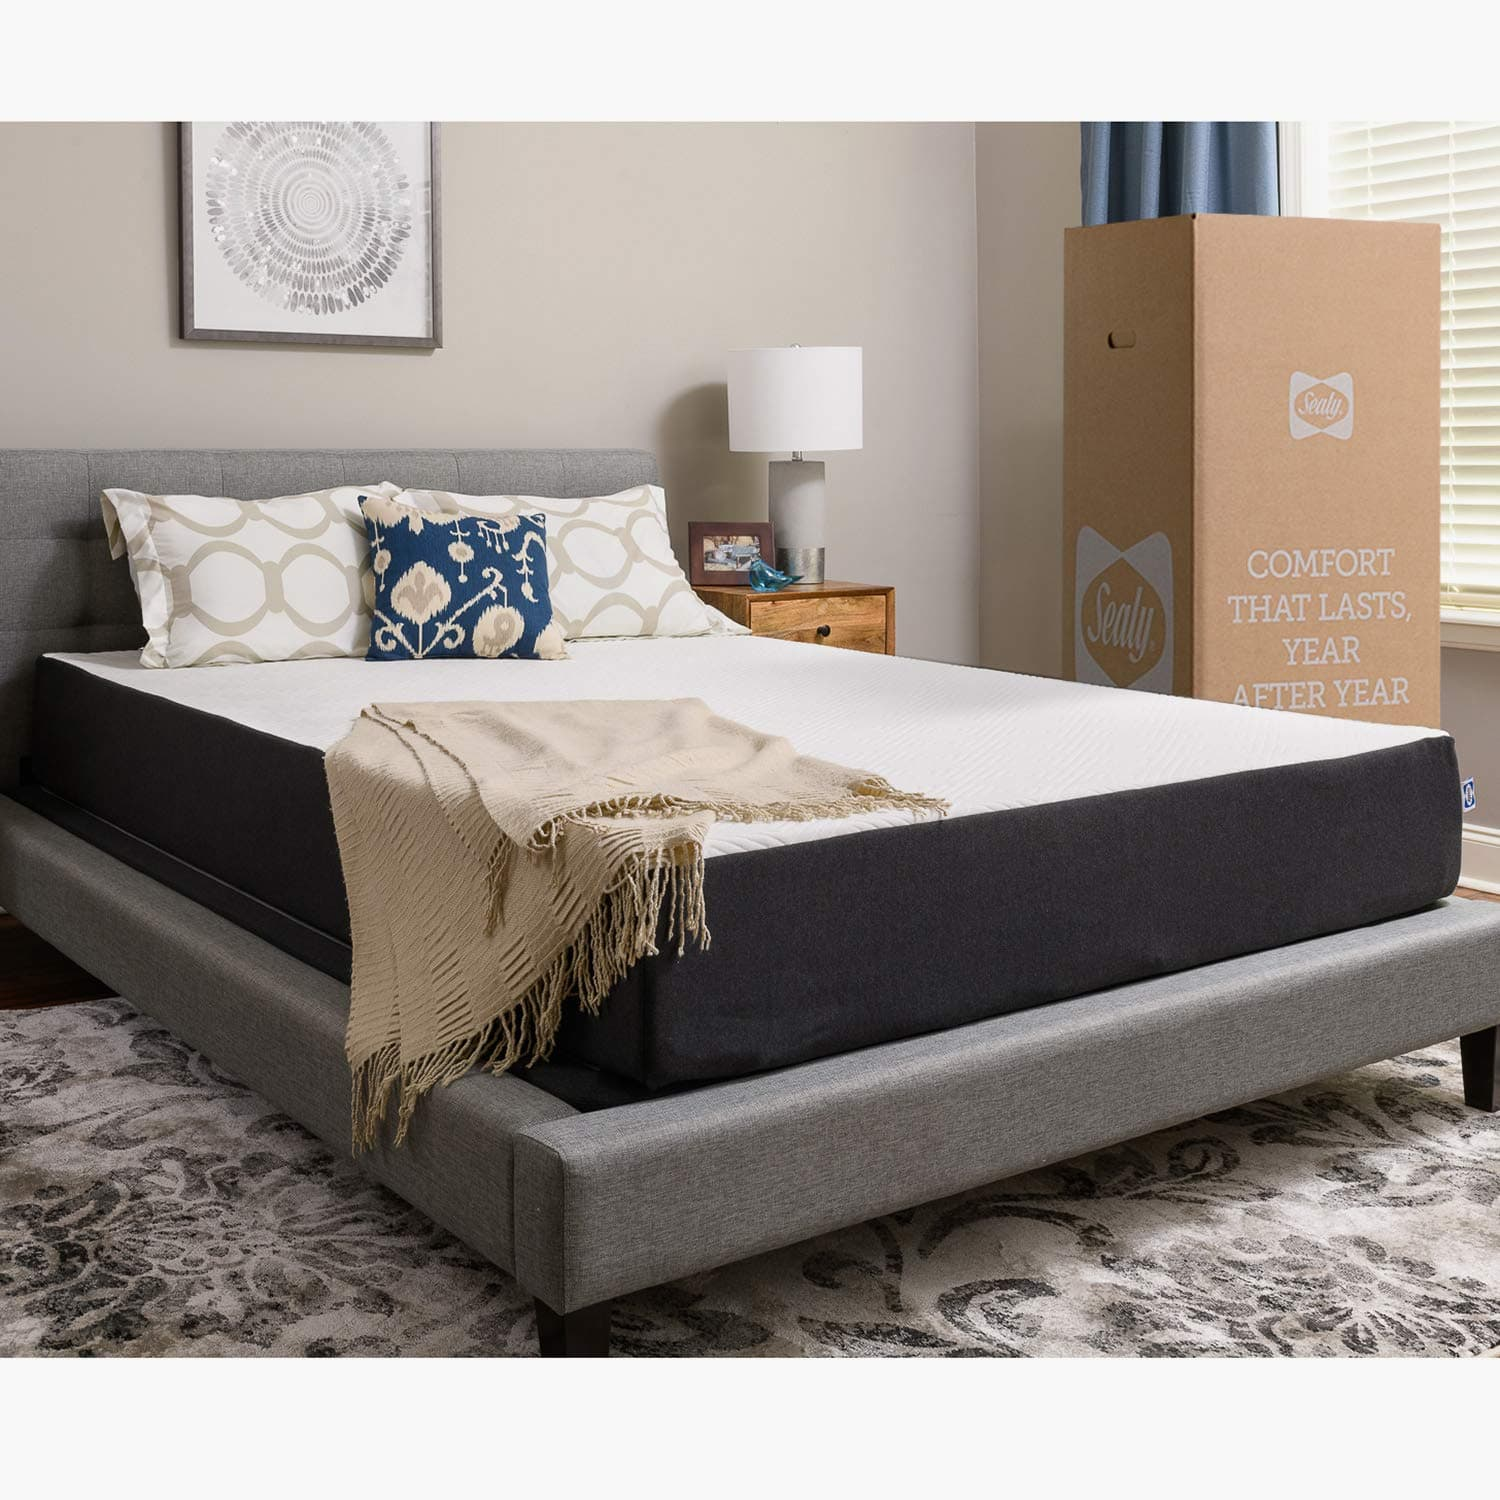 Sealy, 10-Inch, Memory Foam bed in a box, Adaptive Comfort Layers, Medium-Firm Feel Mattress, Queen -$298/King-309$